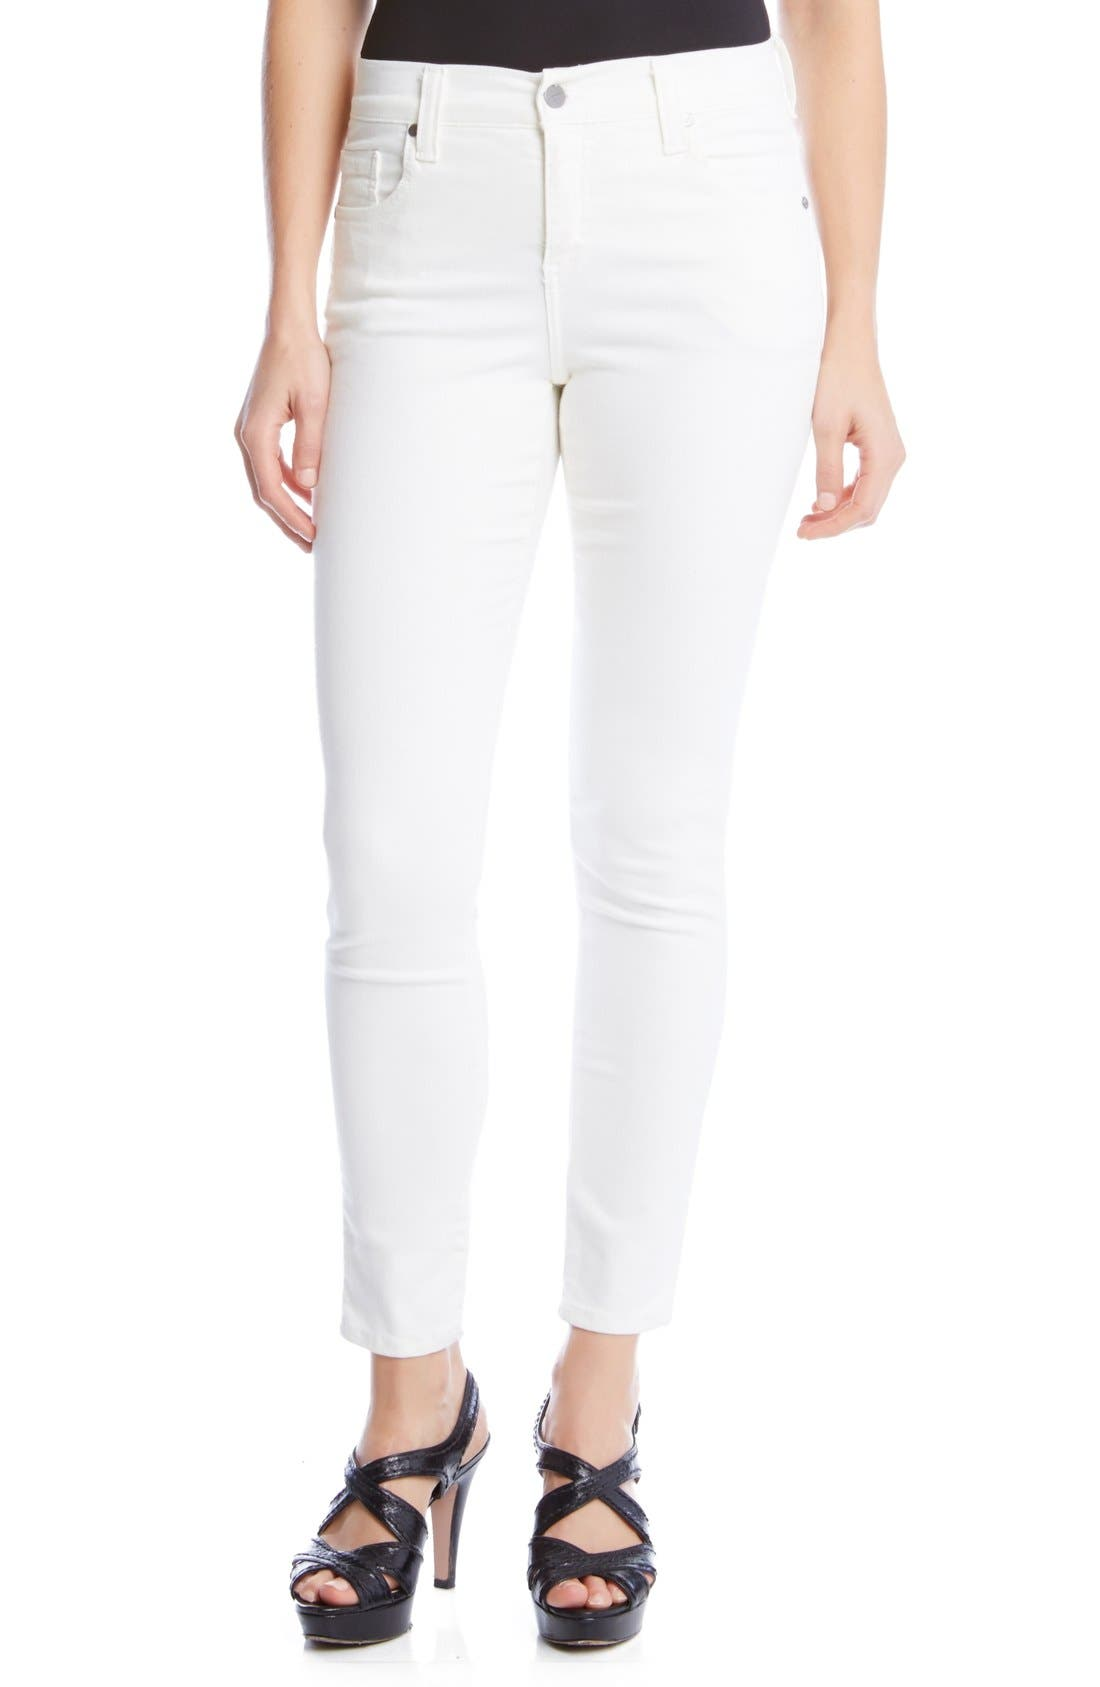 Alternate Image 1 Selected - Karen Kane 'Zuma' Stretch Crop Skinny Jeans